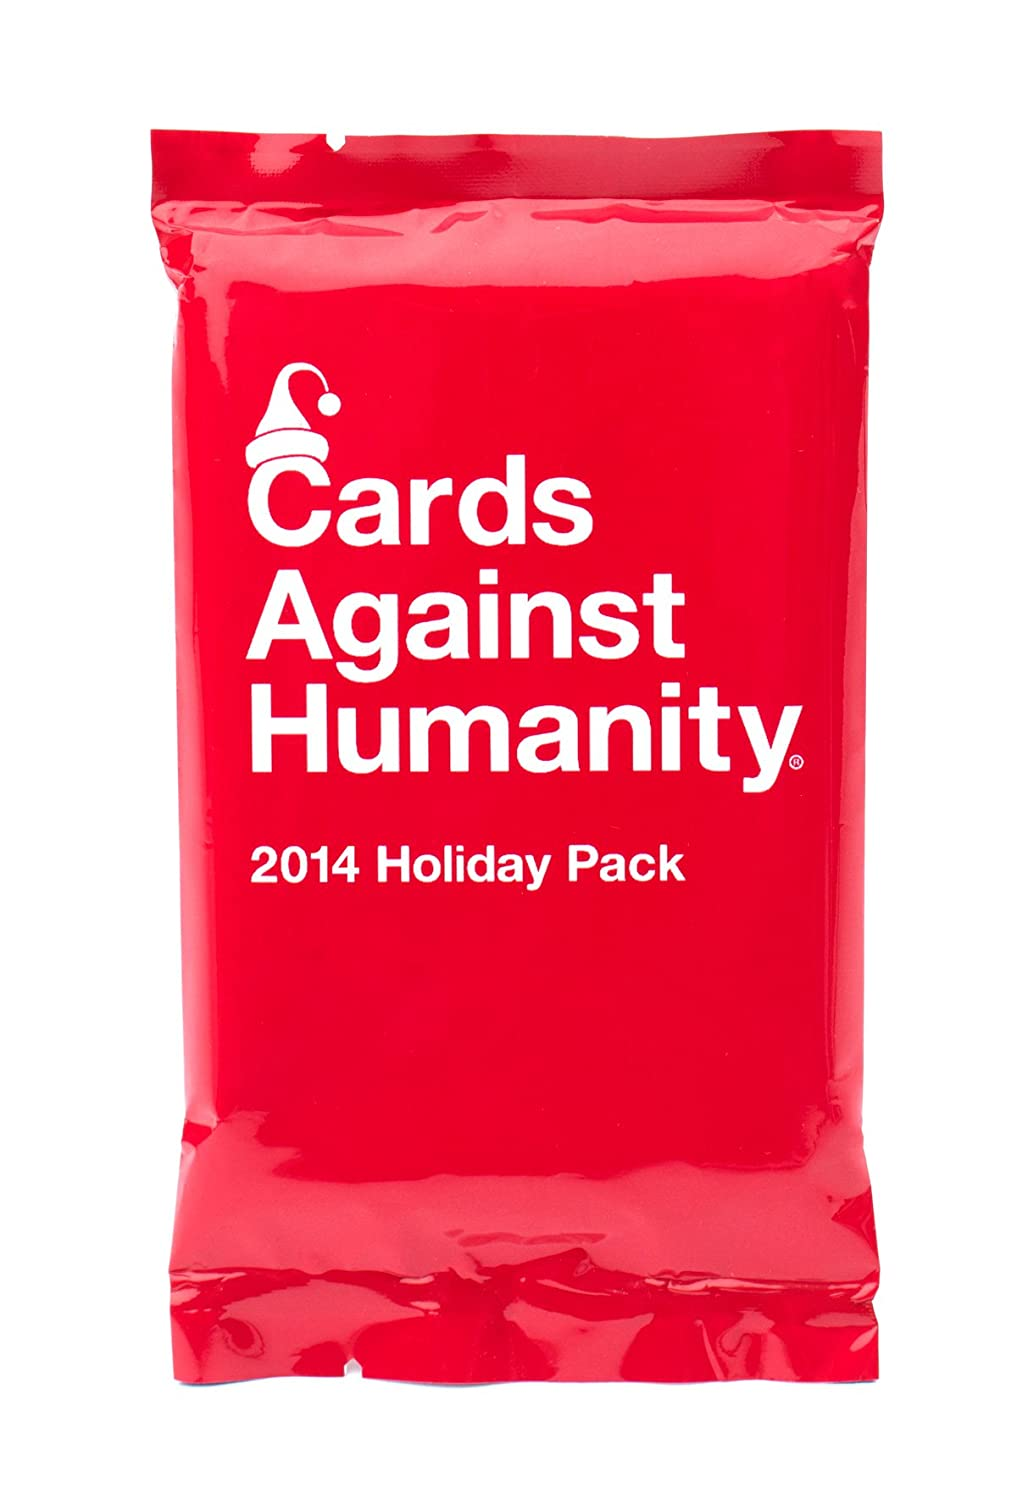 Amazon.com: Cards Against Humanity: 2014 Holiday Pack: Toys & Games